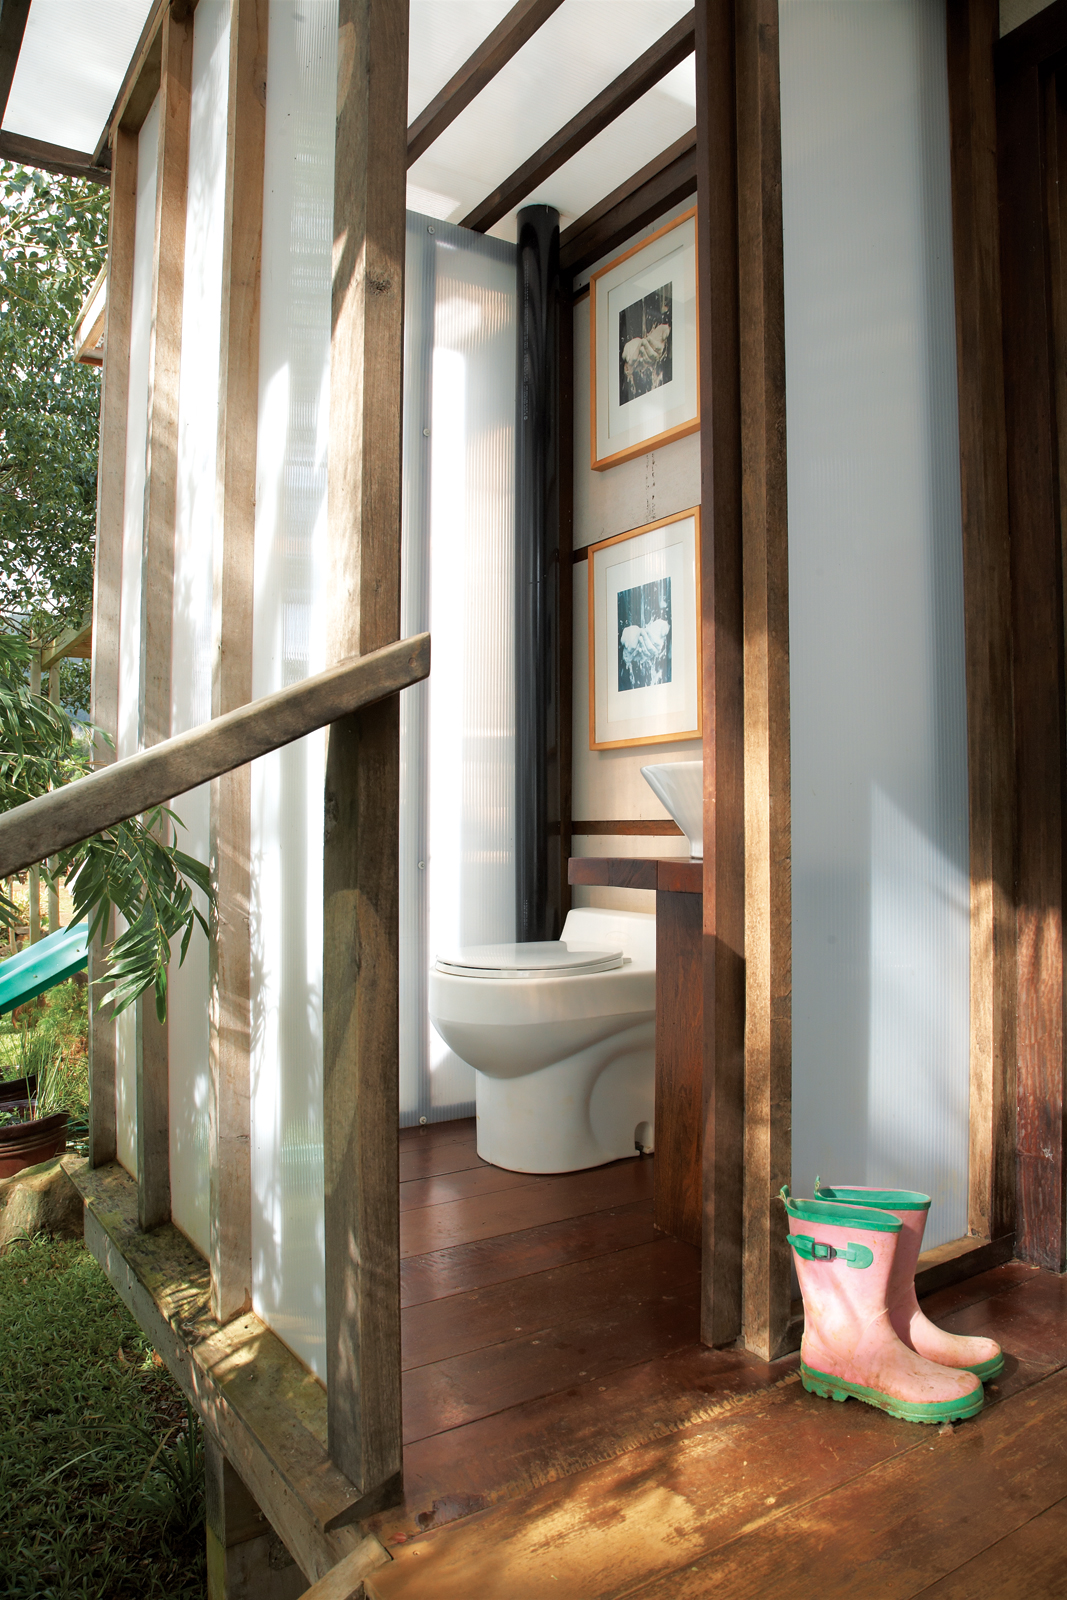 Bathroom with composting toilet and found wood table